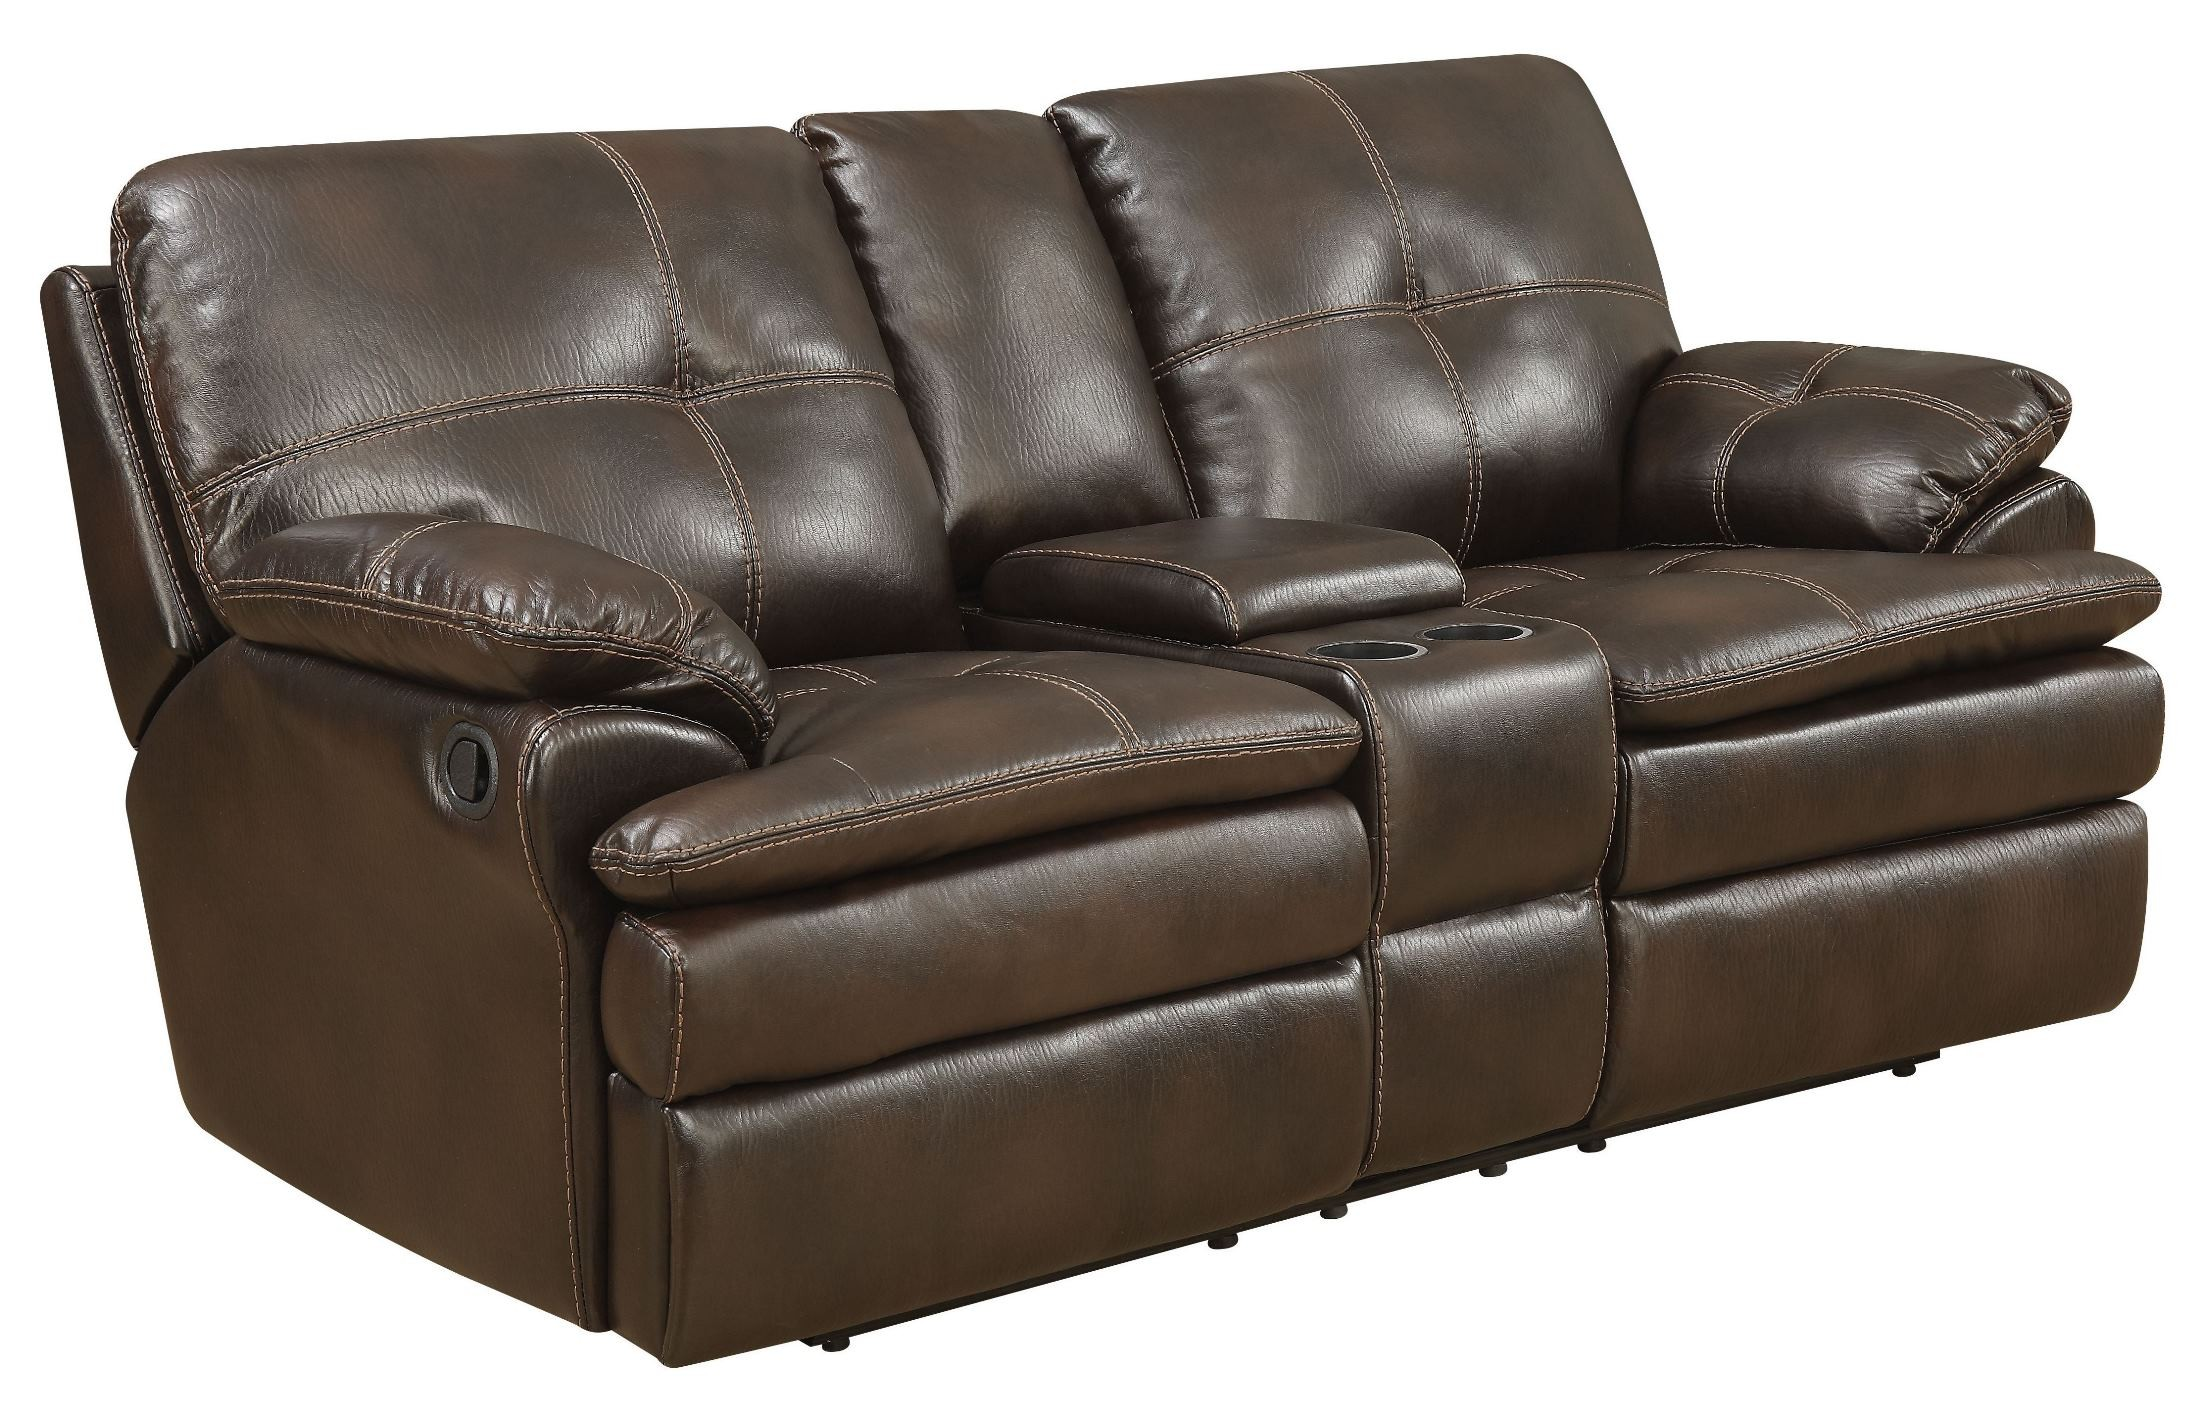 Jackson Brown Reclining Loveseat From Avalon Furniture Coleman Furniture